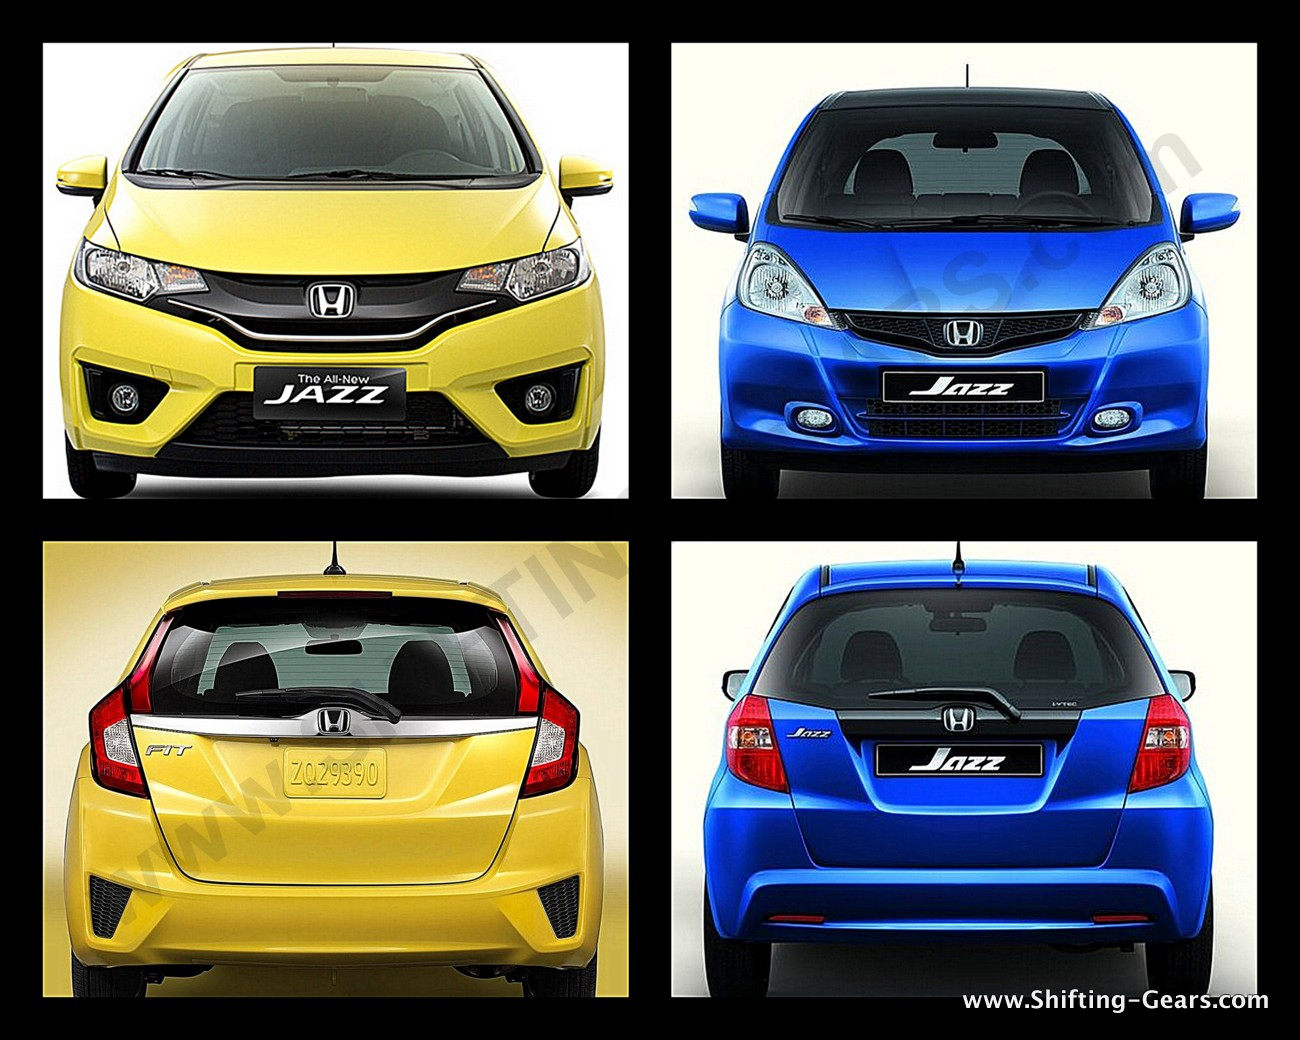 2nd generation Jazz (Blue) with the 3rd generation Jazz (Yellow)